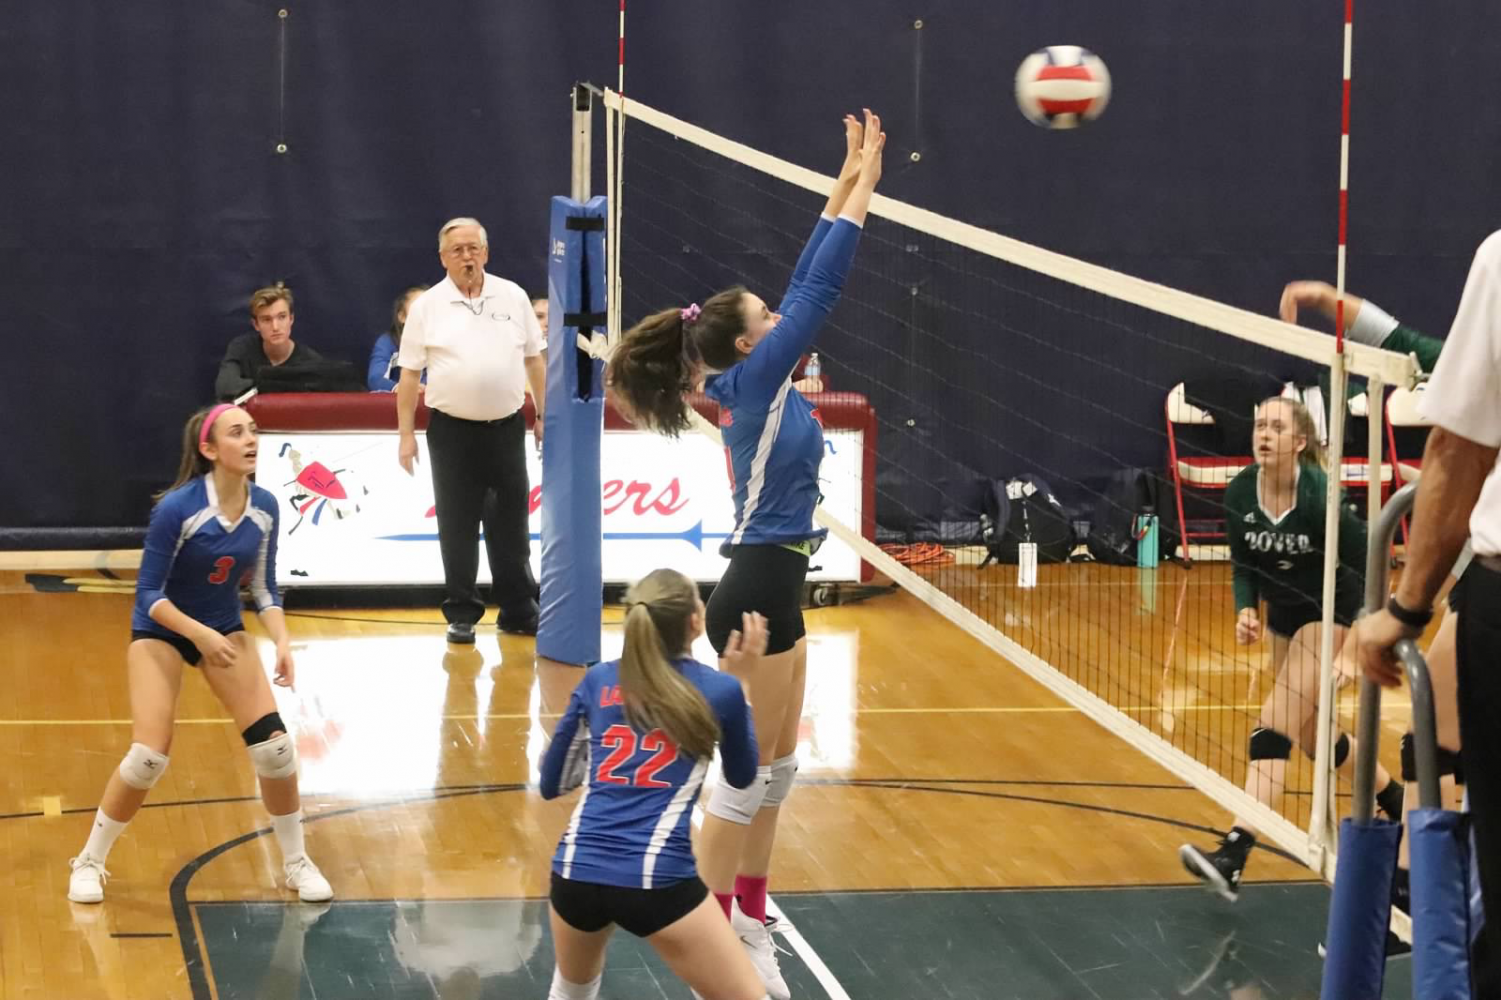 Junior Katrina King blocks a strong hit against Dover volleyball team.